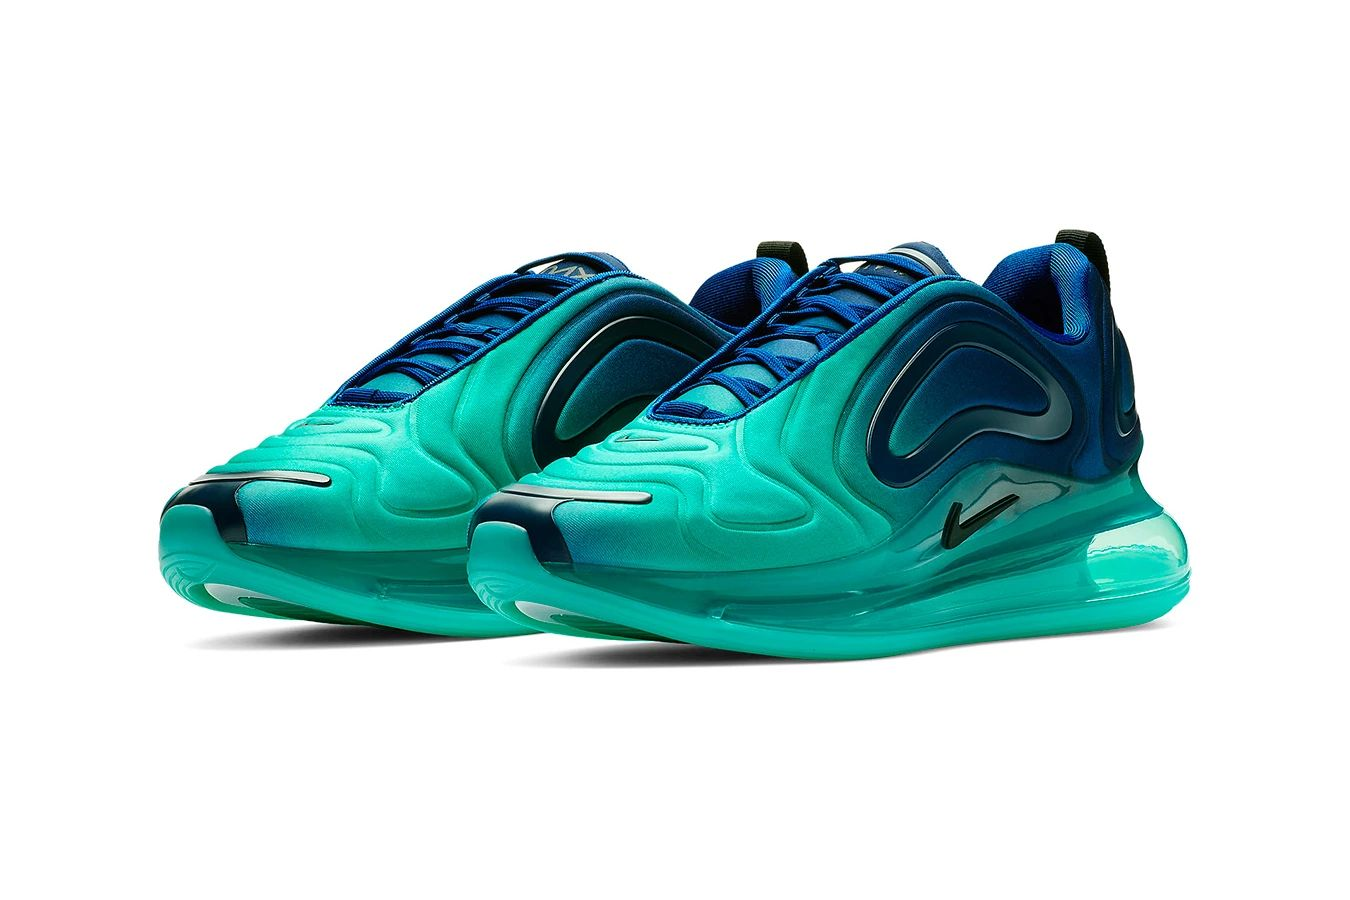 Nike's Air Max 720 Gets Hit With An